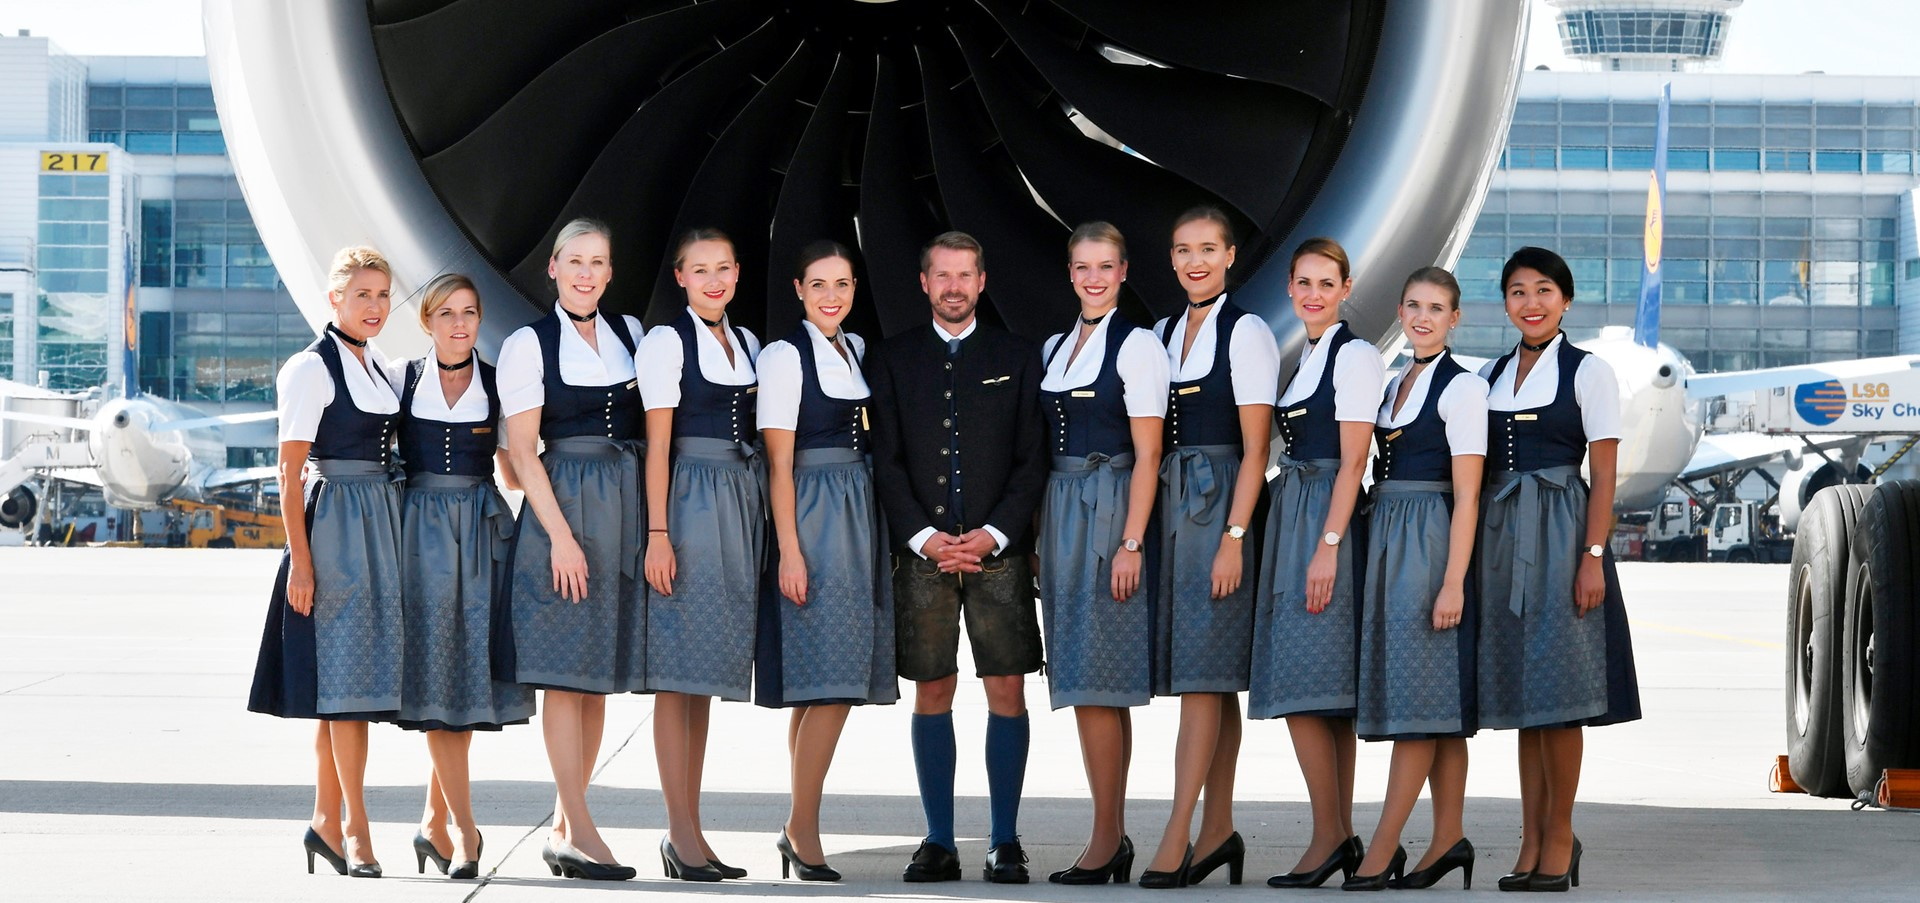 Take-off for the world's largest Oktoberfest: Lufthansa